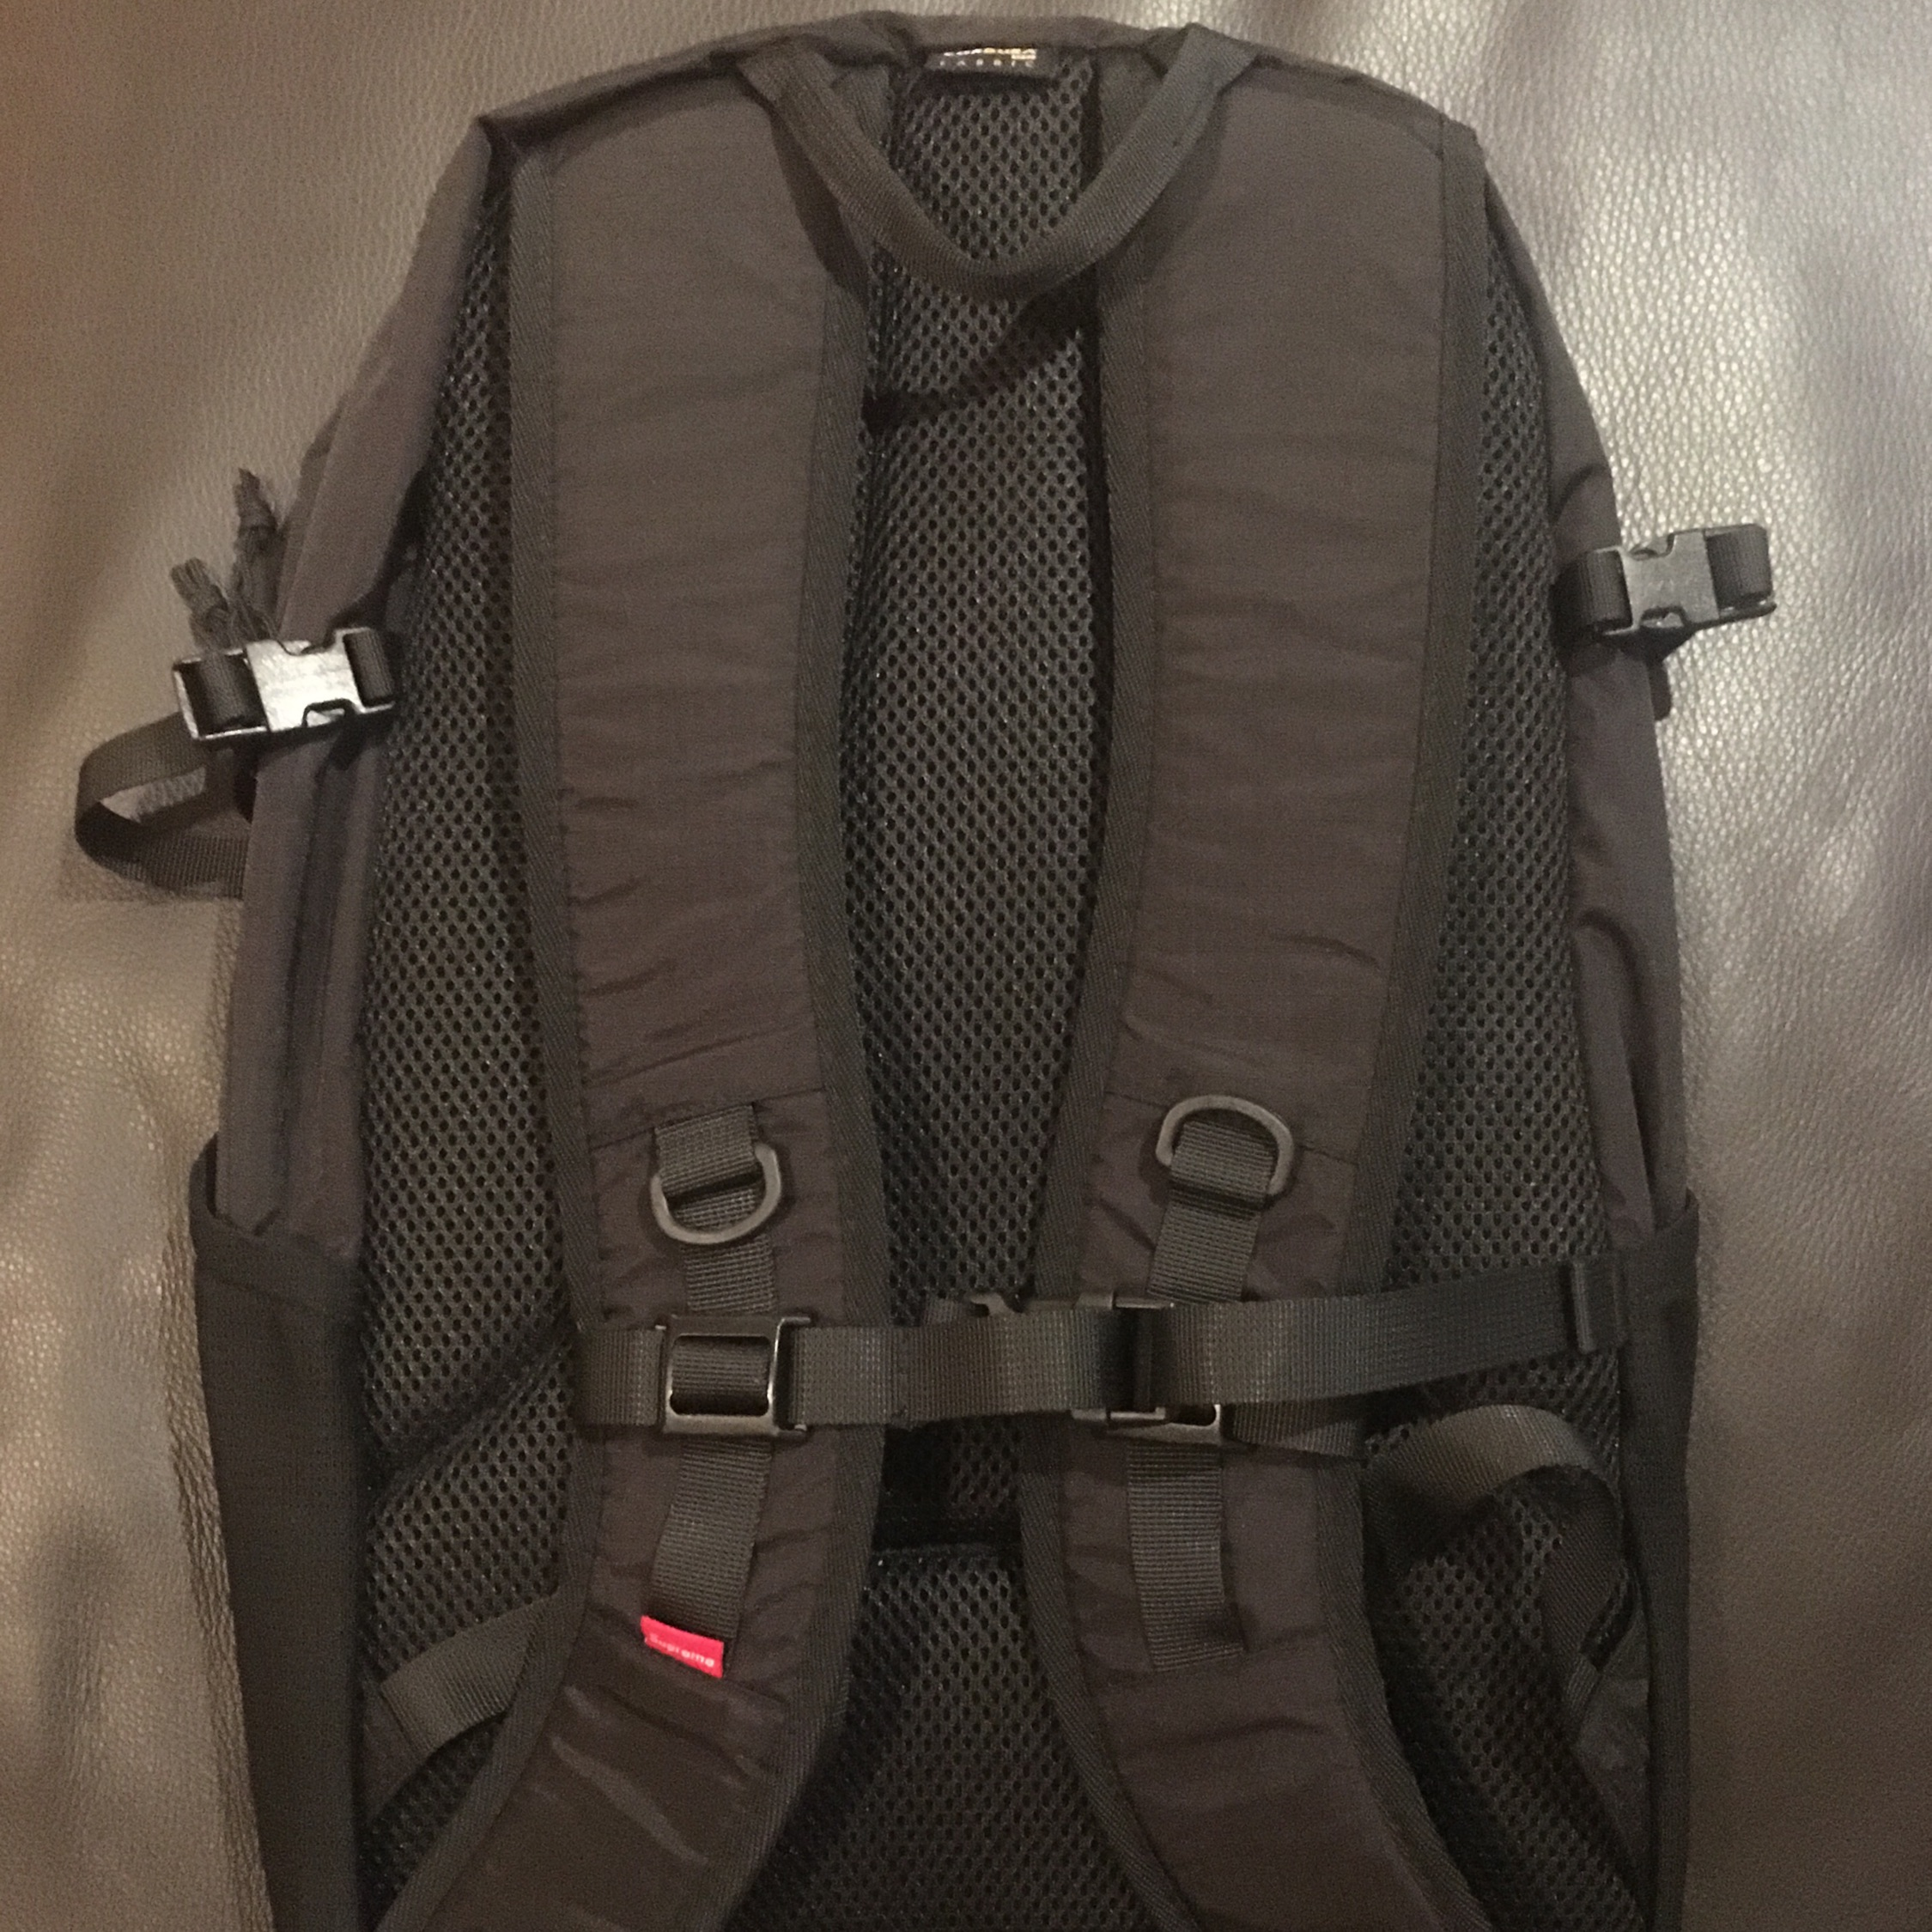 6a47007f8d5 *Negotiable* Supreme Ss17 Backpack Black